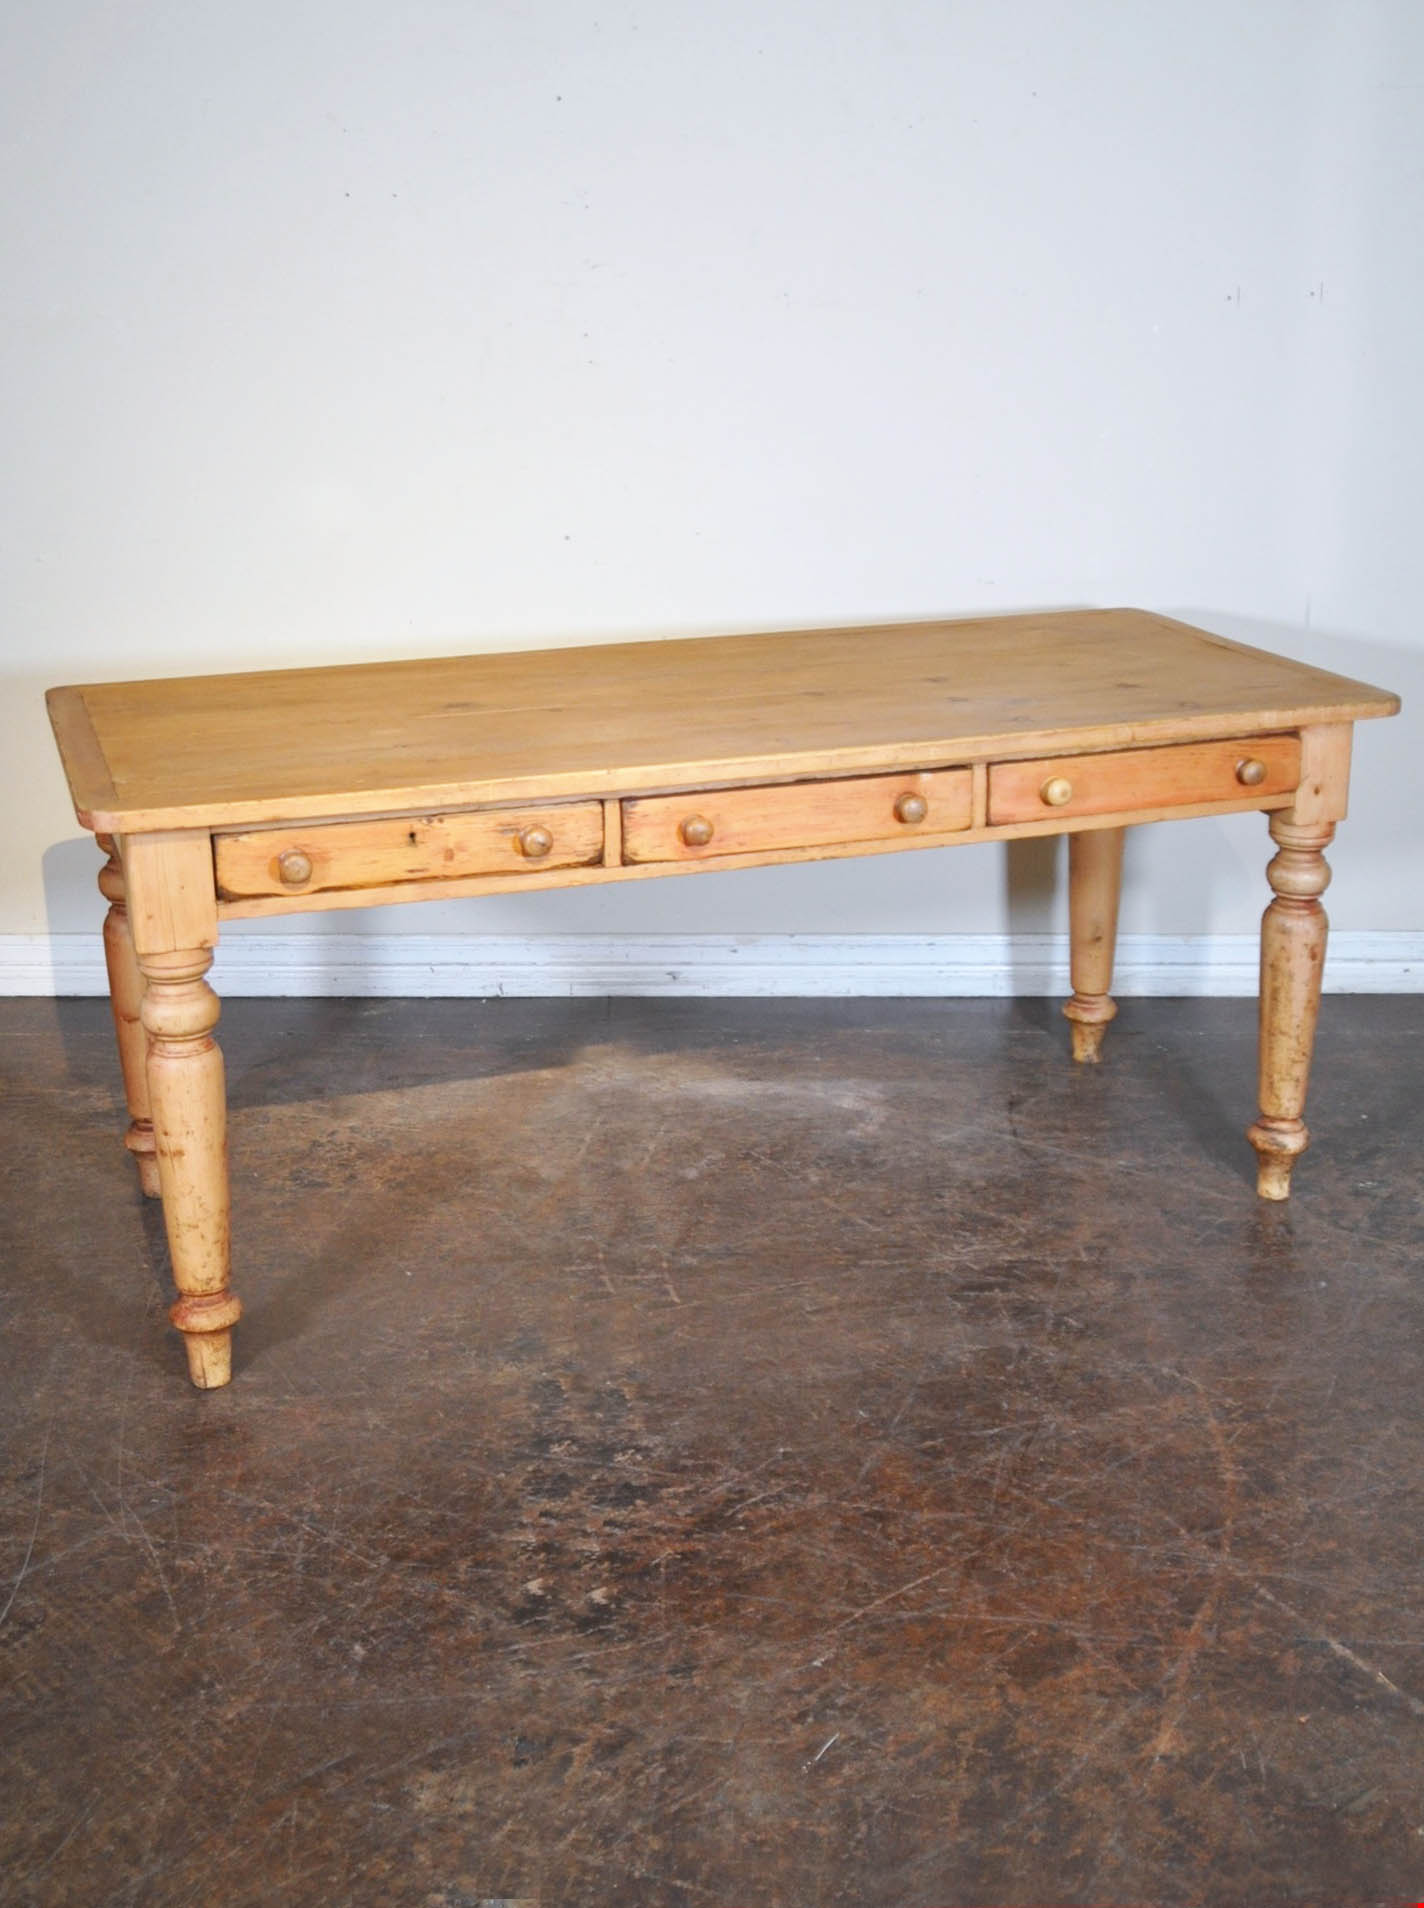 Remarkable Antique Farm Table With Three Drawers And Turned Legs Machost Co Dining Chair Design Ideas Machostcouk